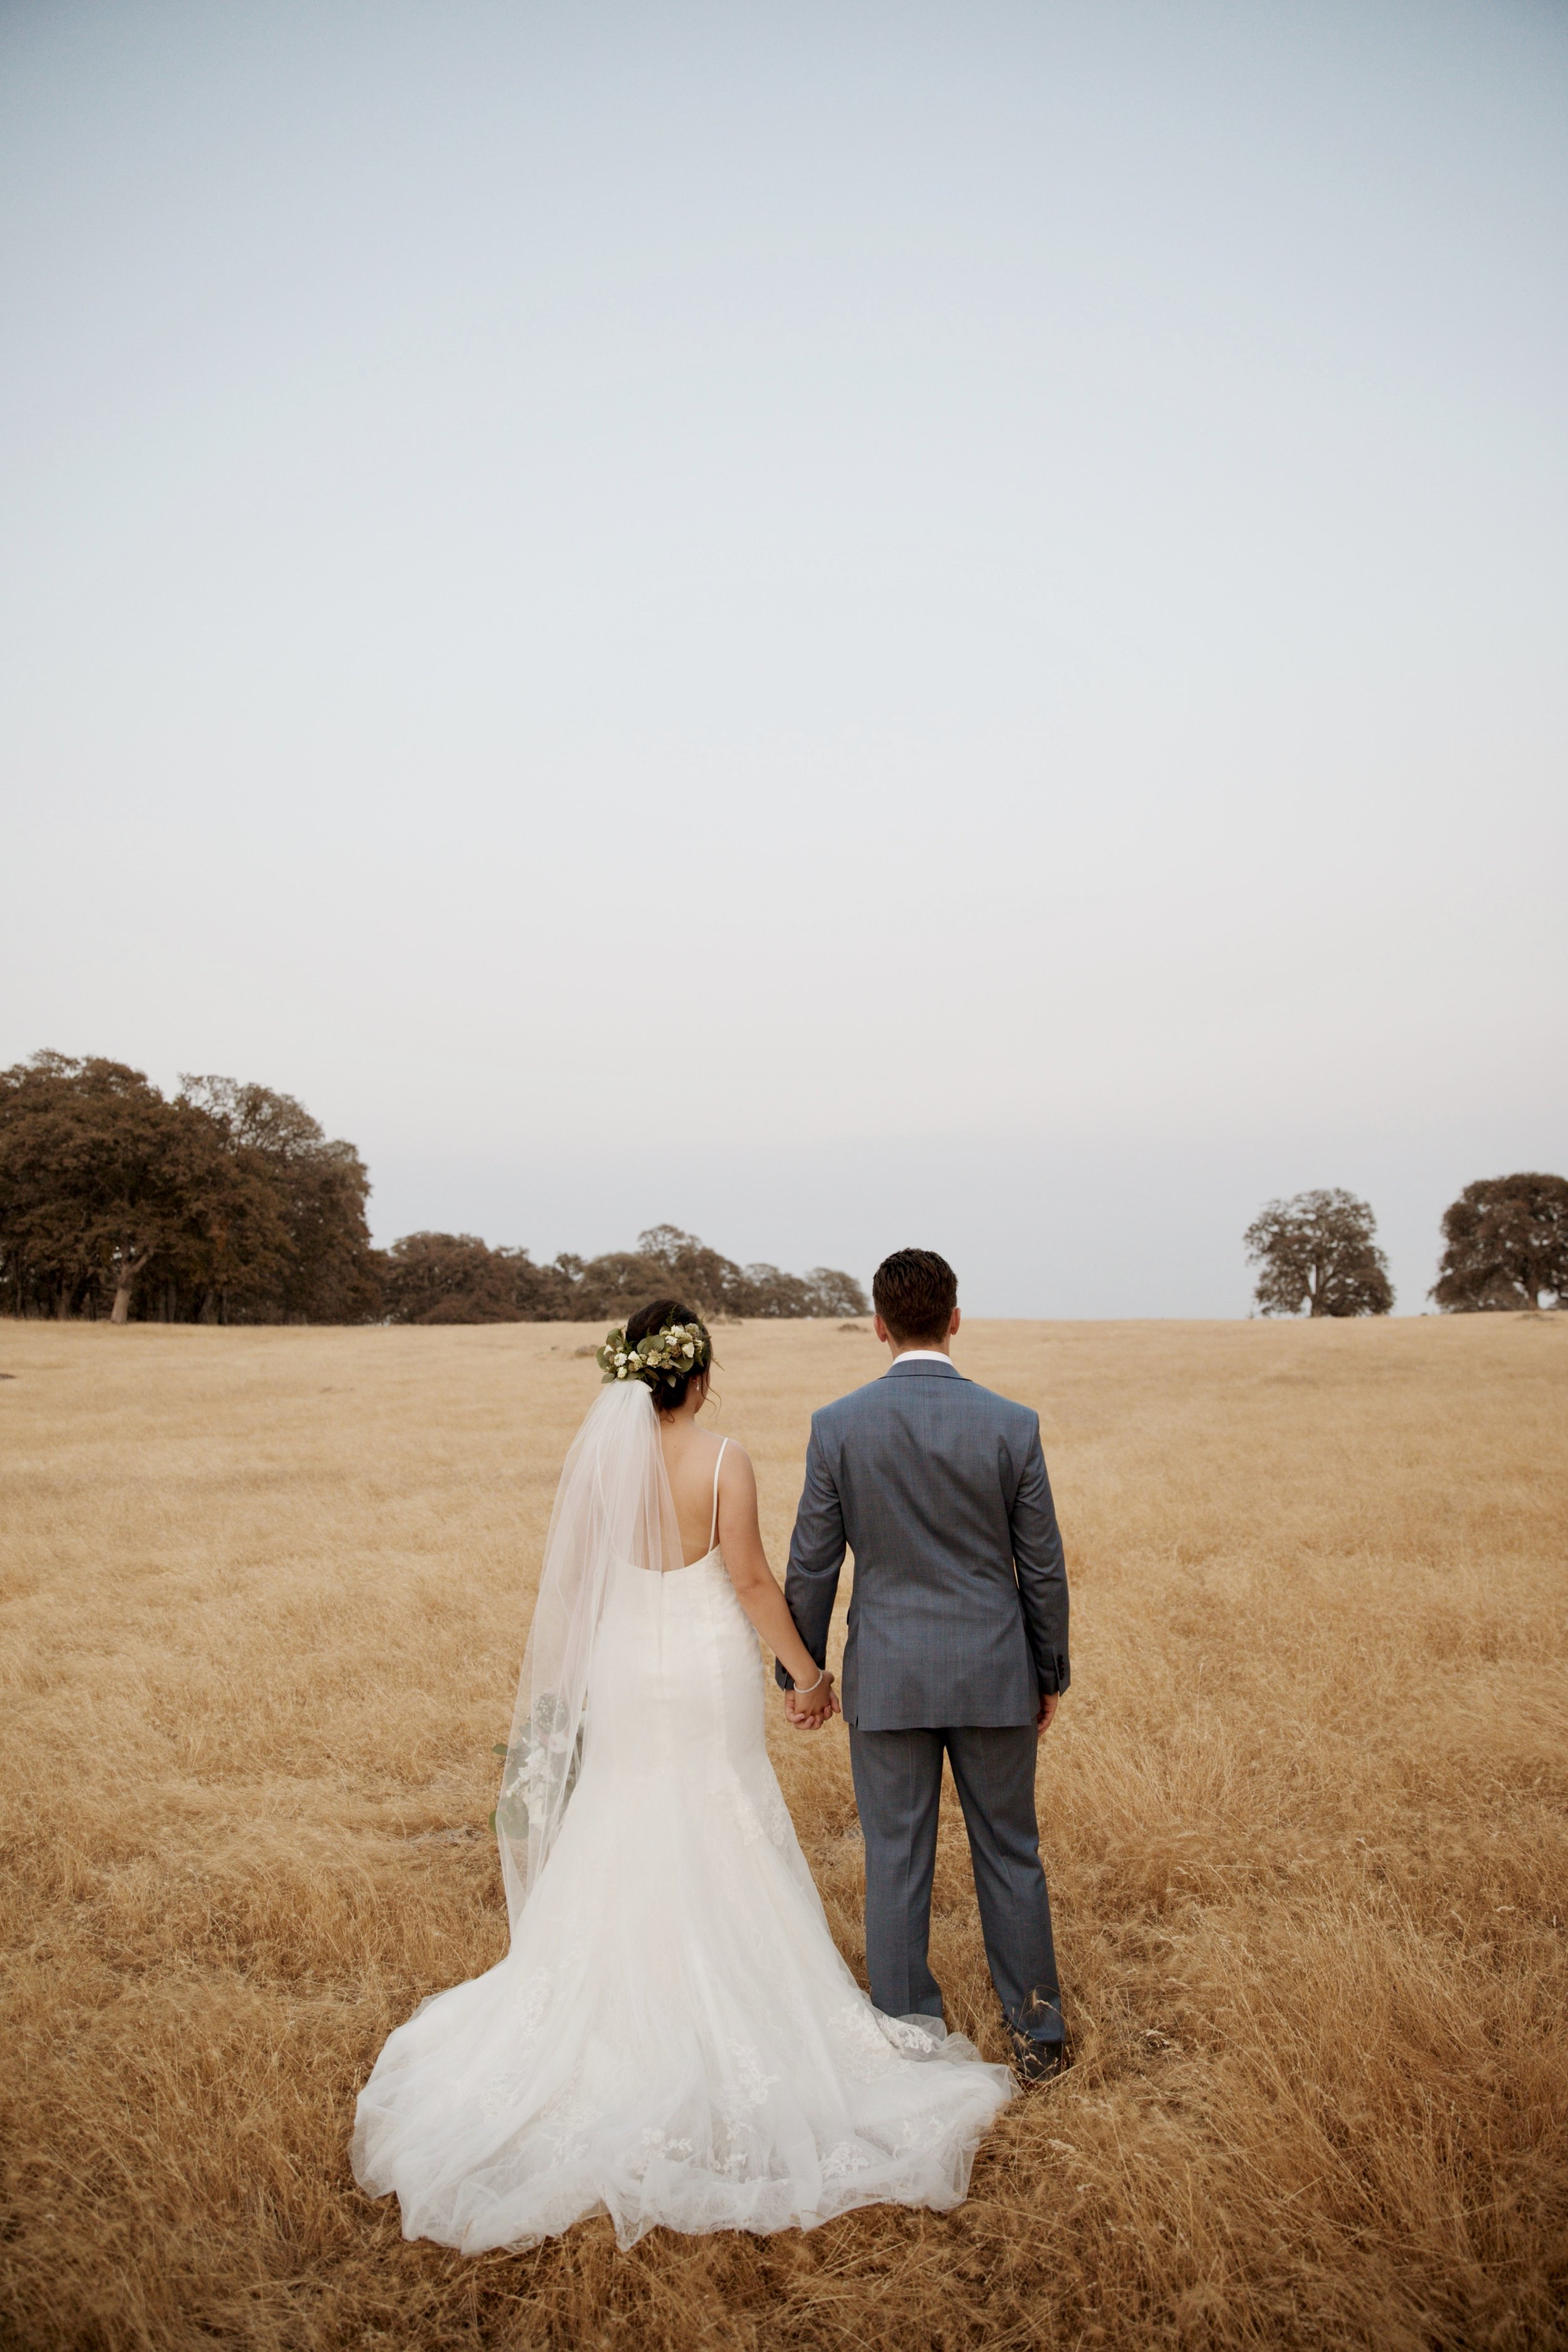 Robert + Evellyn - Grass Valley